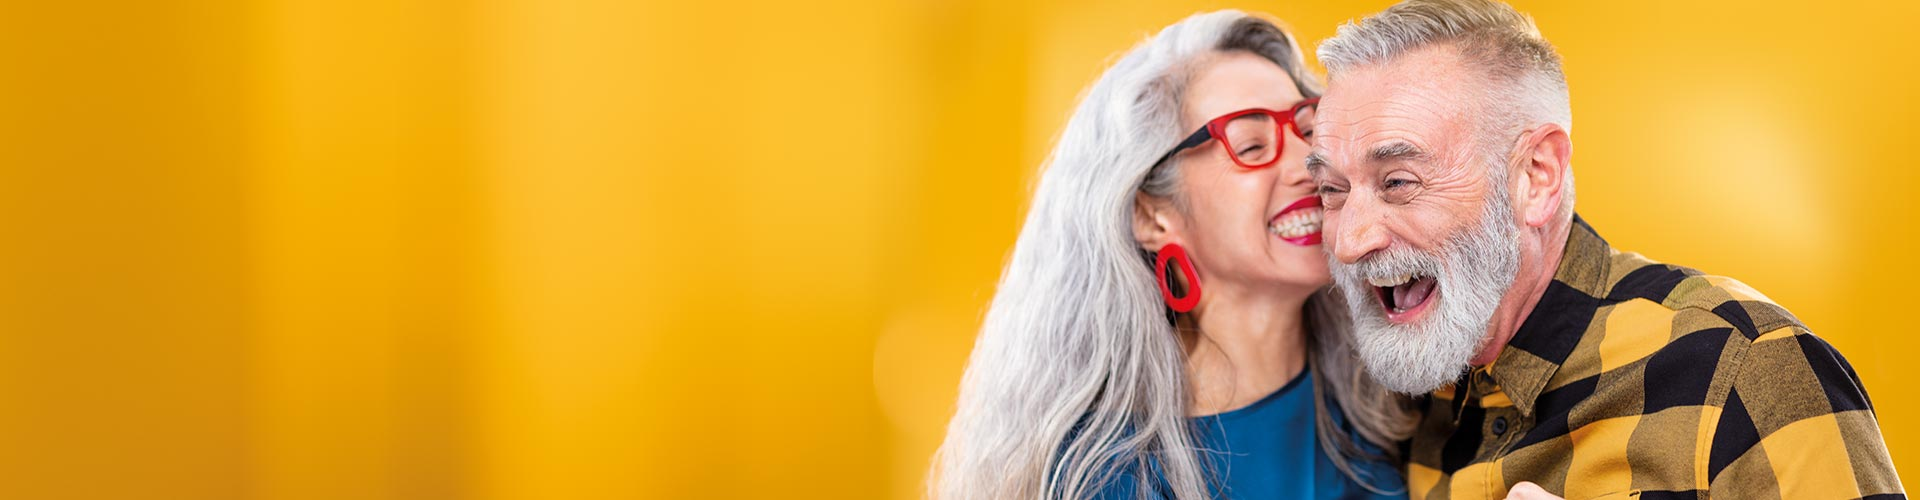 A middle-aged woman hugging whispering secrets to a friend. He is wearing Philips HearLink rechargeable hearing aids.